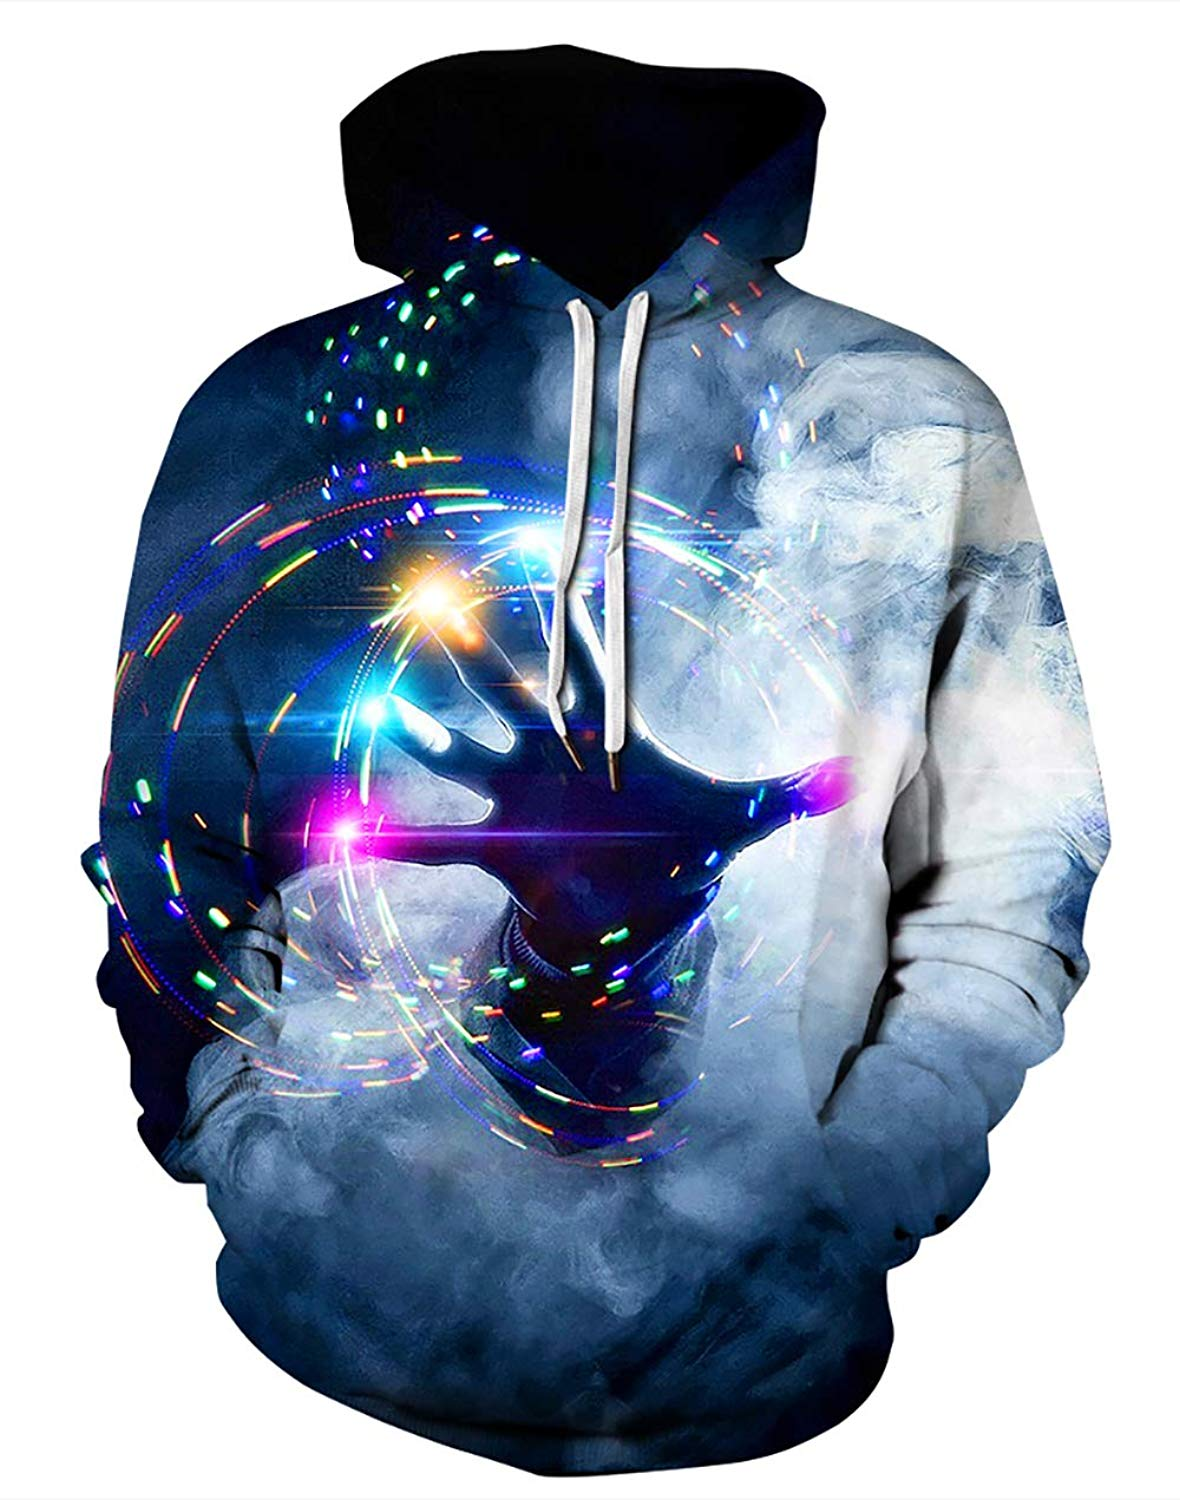 558b1ed0bebd Get Quotations · Zegoo Unisex Mens Hoodies Sweatshirt 3D Print Colorful  Galaxy Pullover Halloween Costume